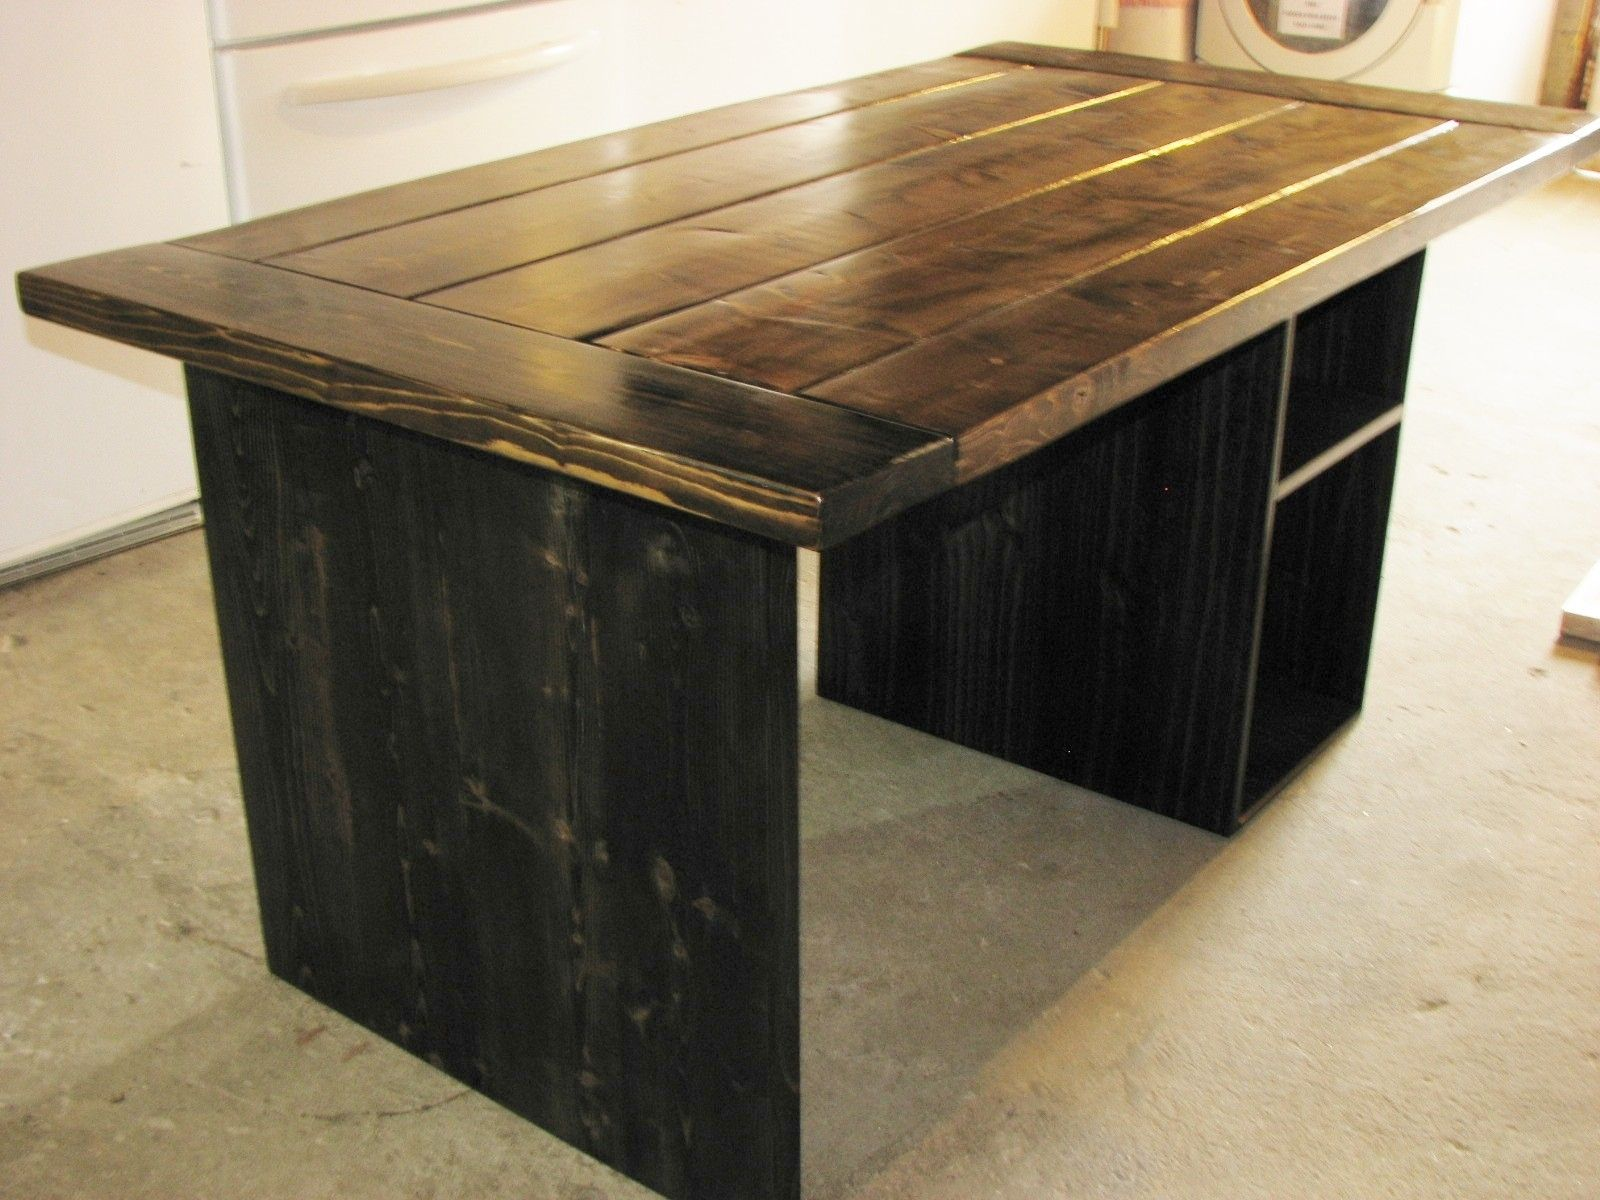 Fullsize Of Homemade Rustic Furniture